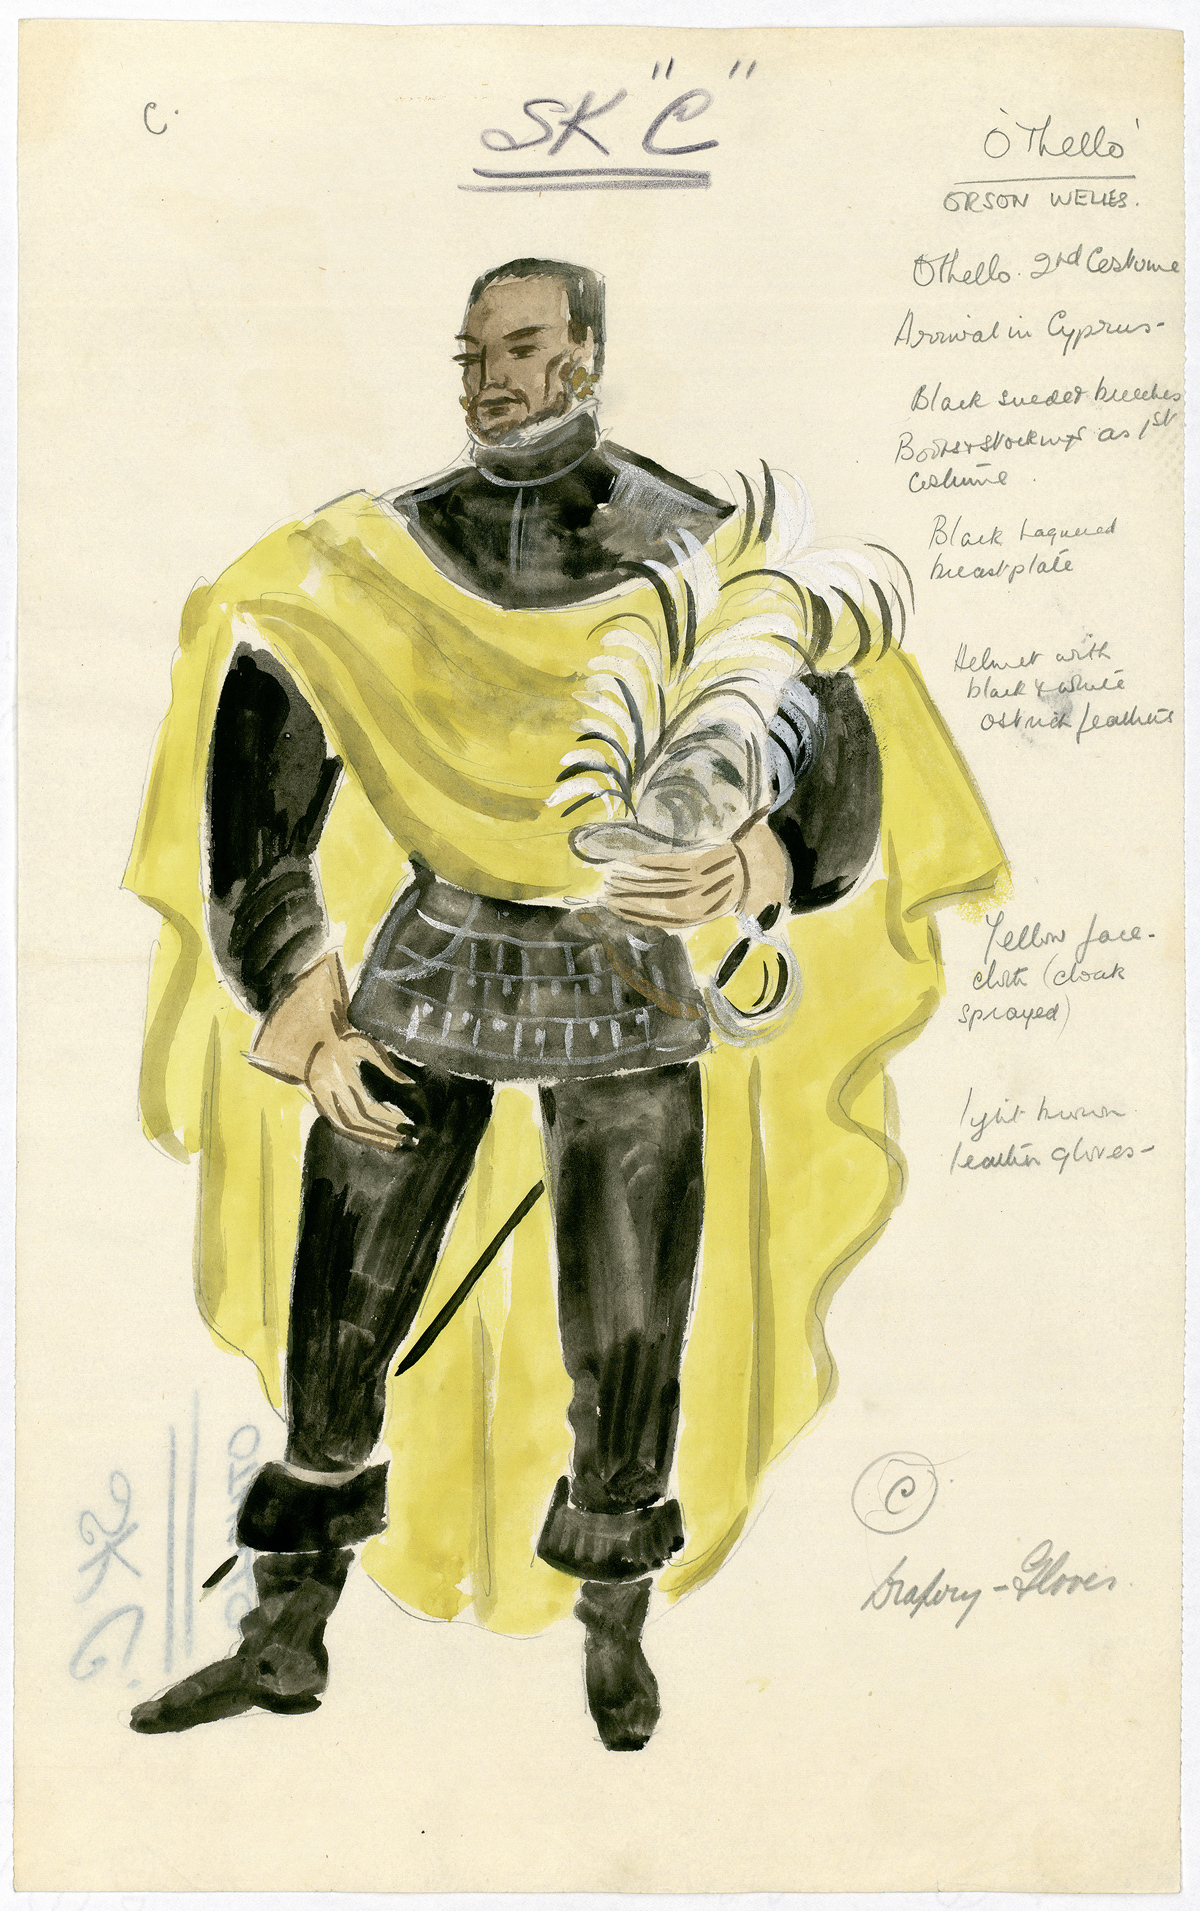 A costume design (after Motley) for Orson Welles in the role of Othello, circa 1951.